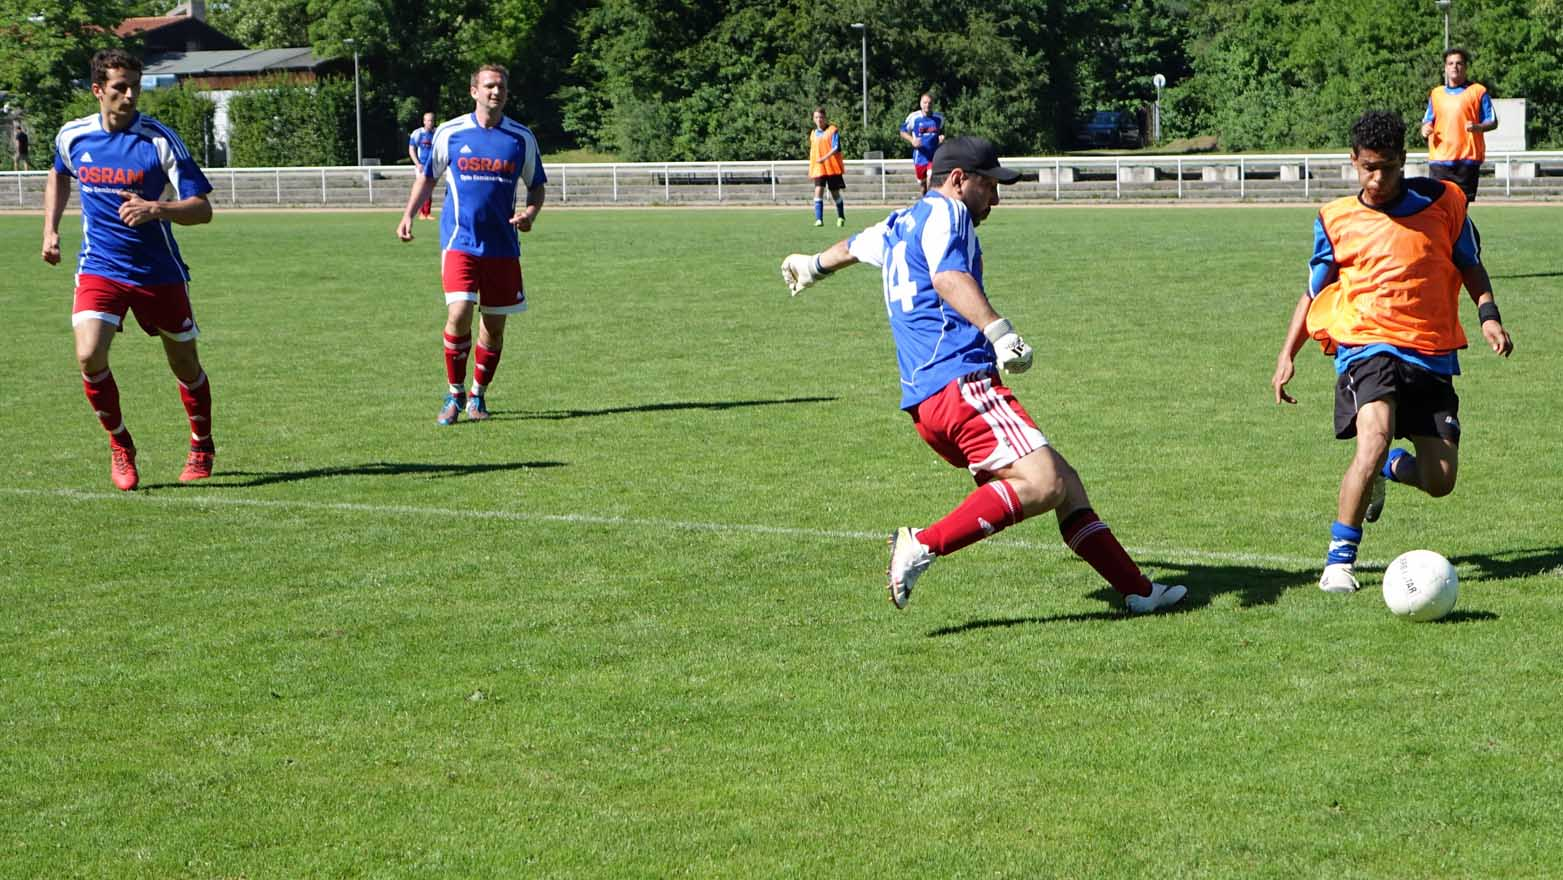 Action beim Soccer Cup 2019